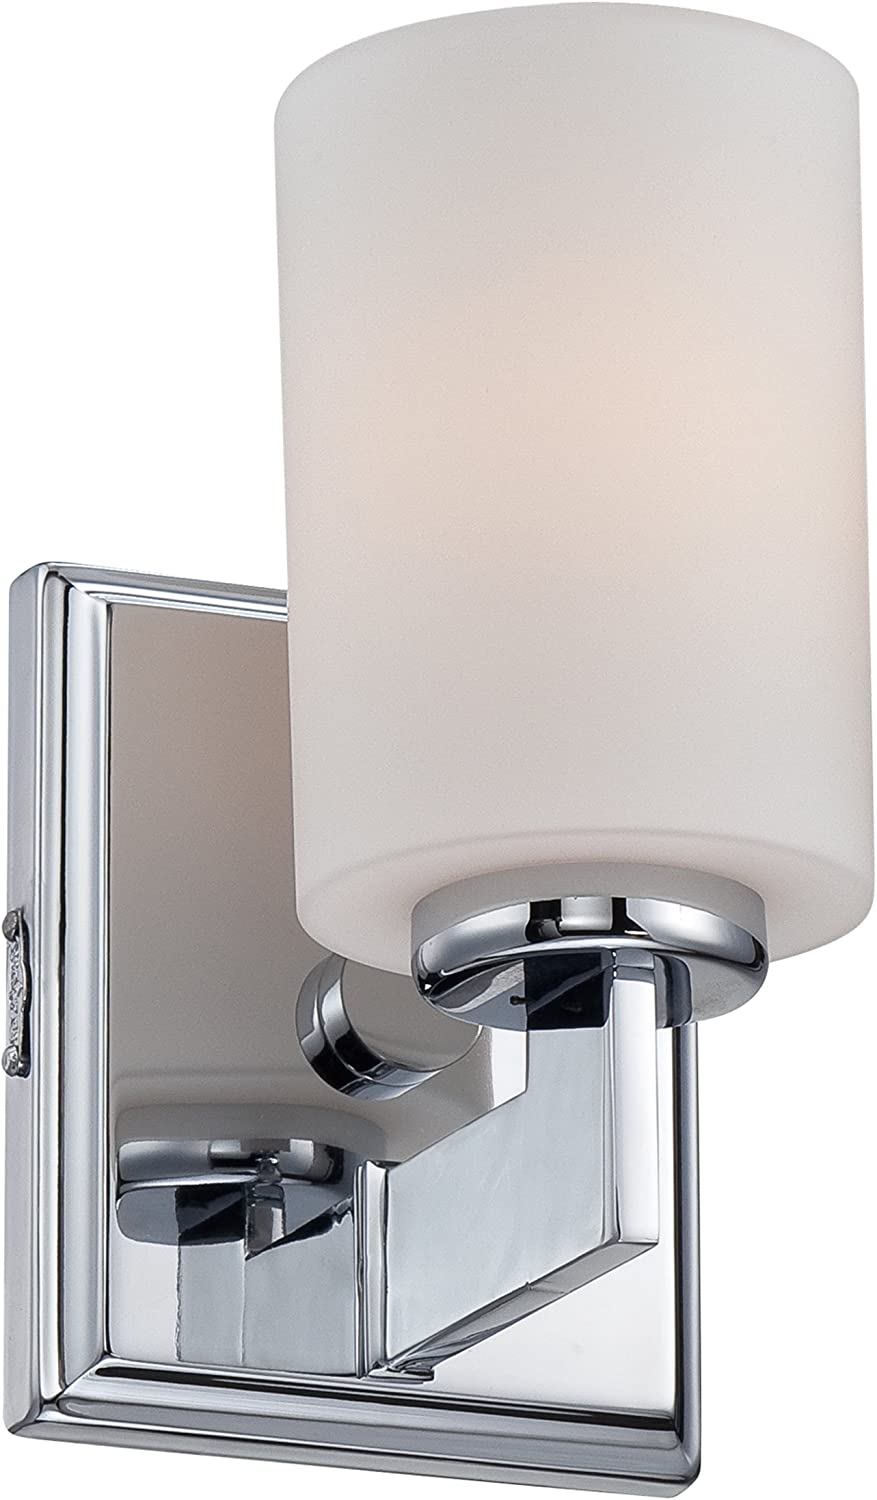 Quoizel TY8601C Taylor Bath Wall Sconce Lighting, 1-Light, 100 Watt, Polished Chrome 8 H x 5 W